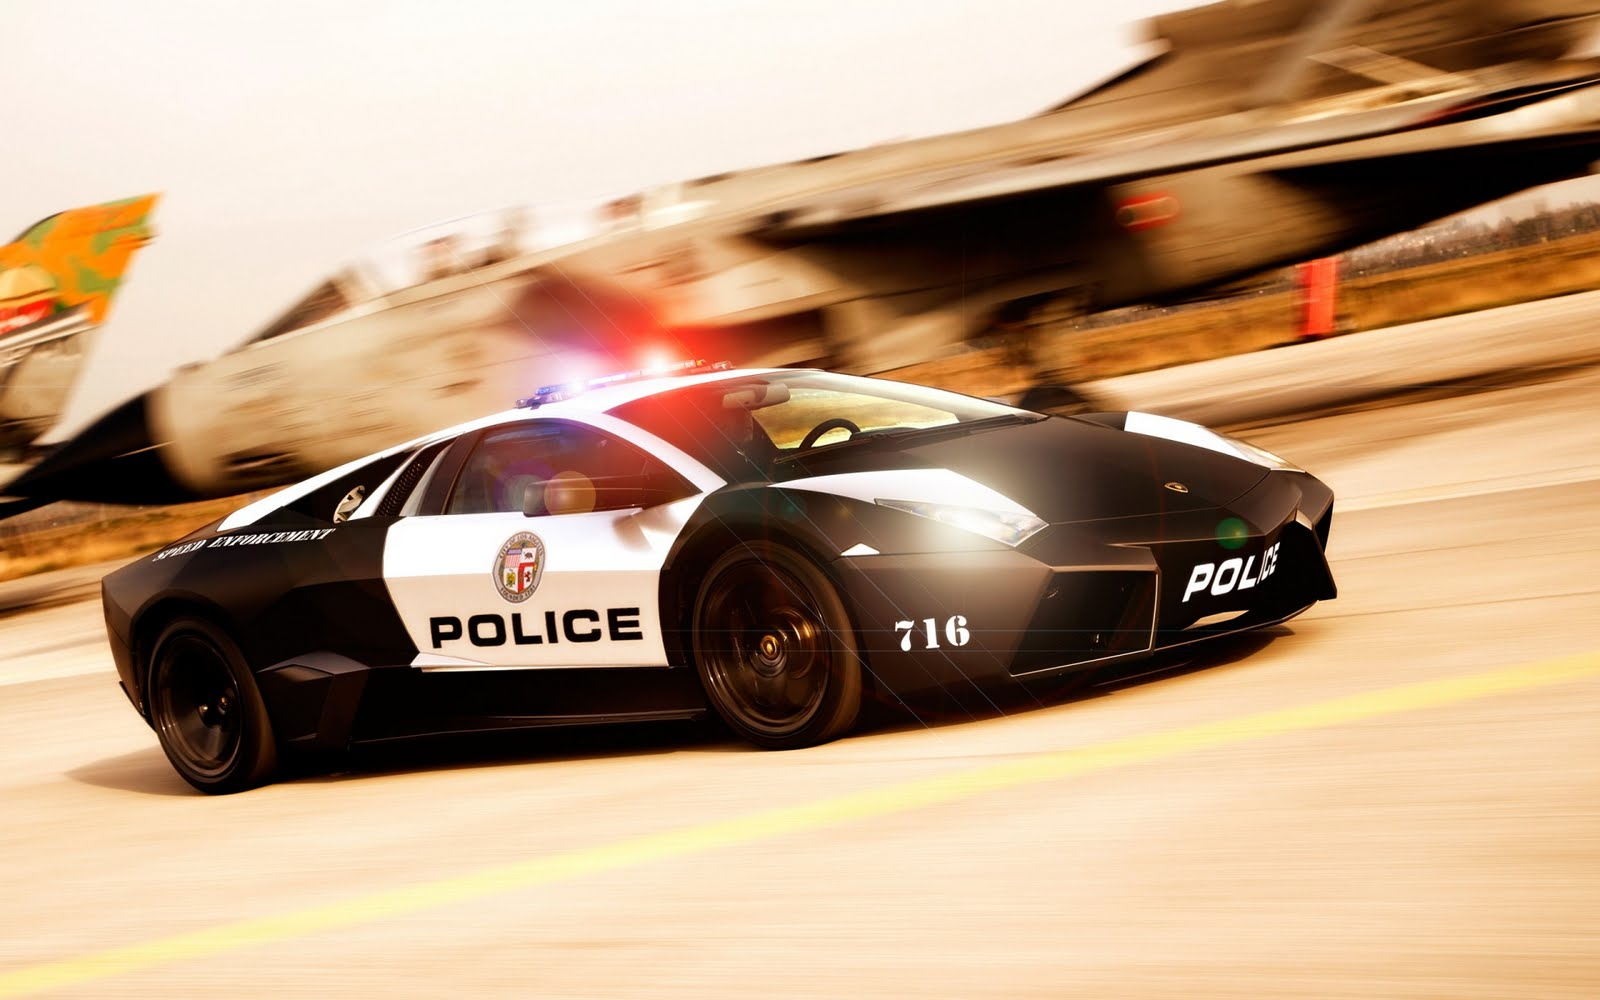 Hd Wallpapers For Pc 1080p Free Download Need For Speed